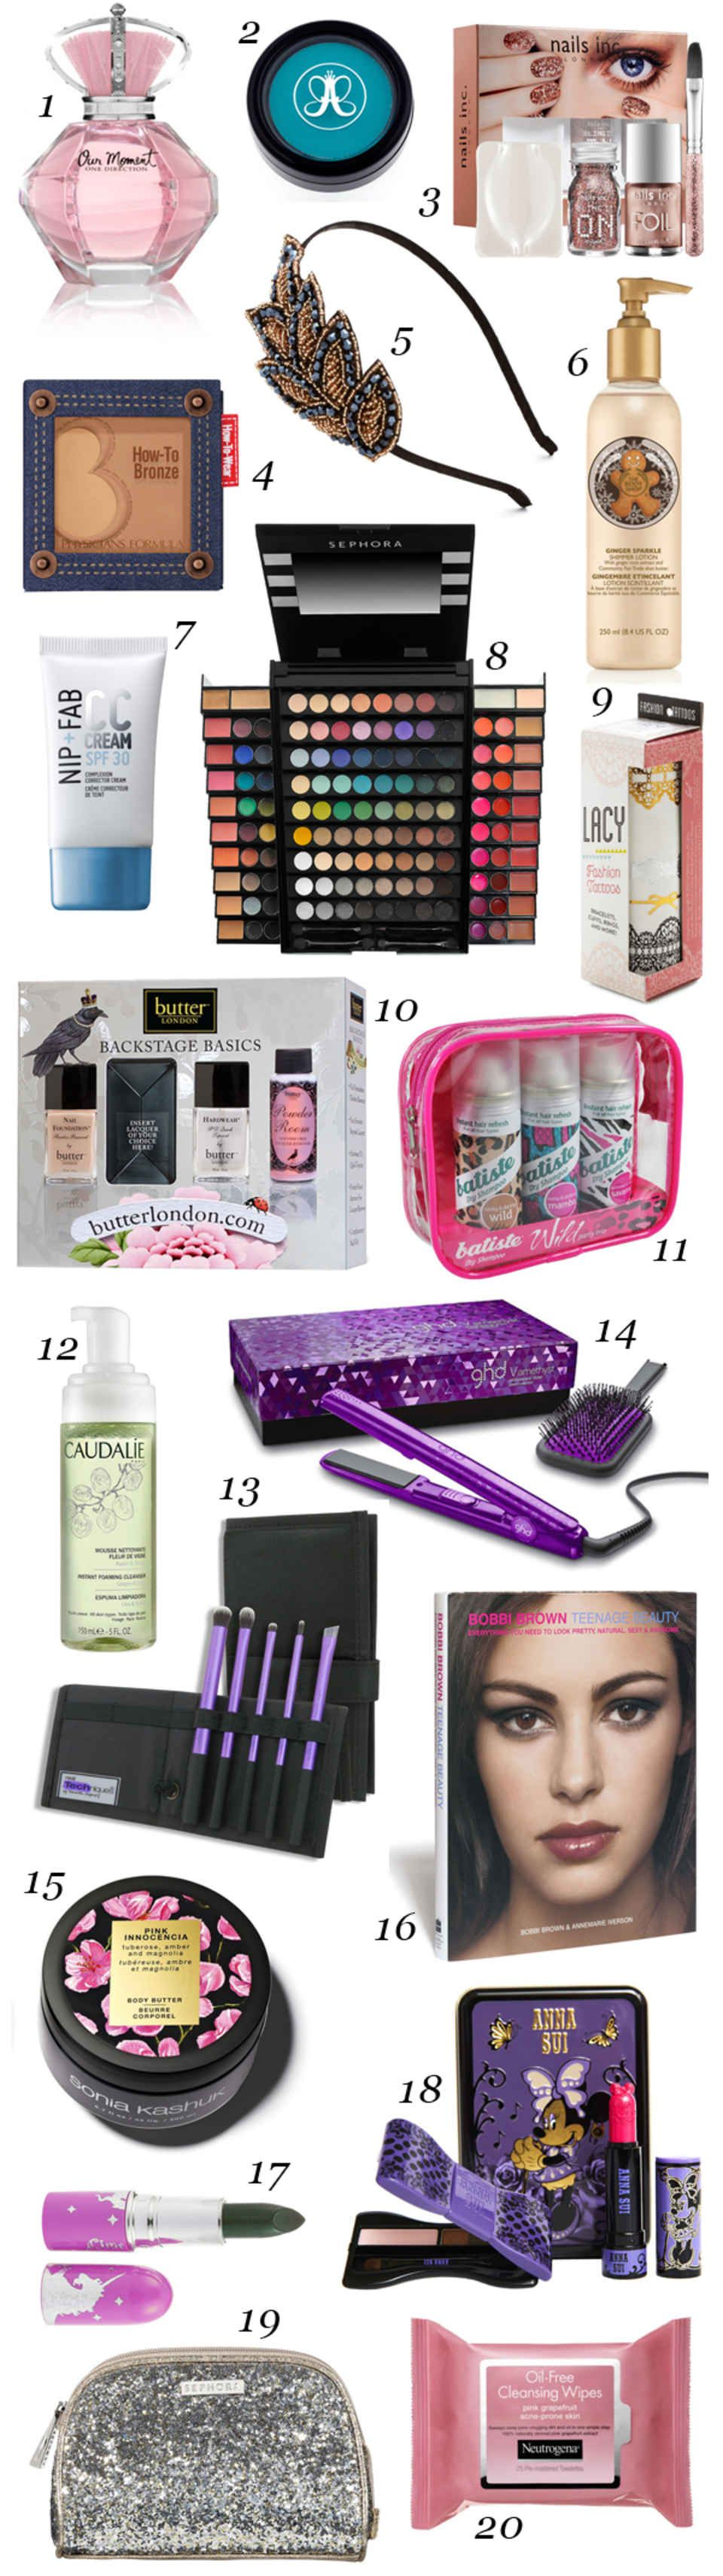 20 Beauty Gift Ideas for Teens and Tweens | Pinterest